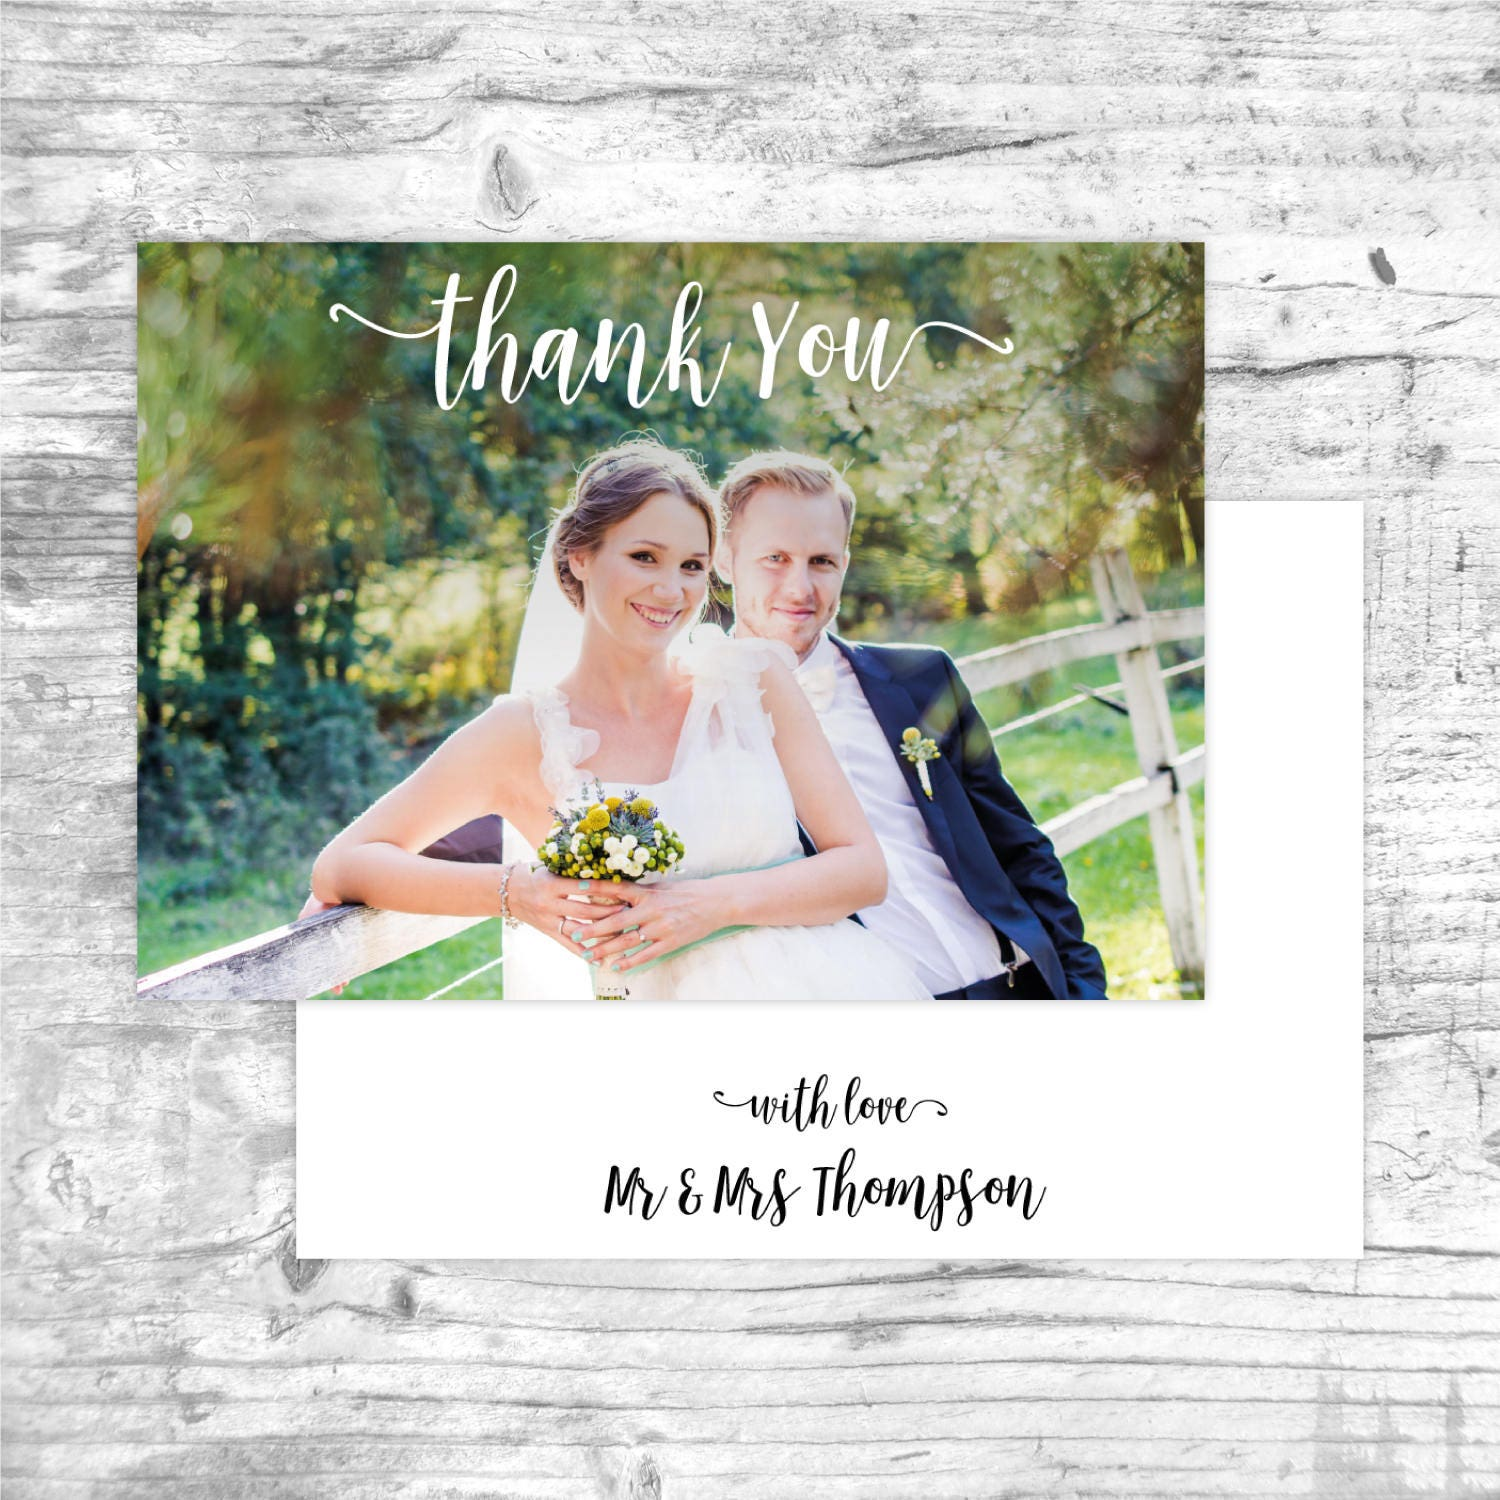 Thank you cards wedding Thank you cards wedding photo Wedding – Thank You Cards Weddings